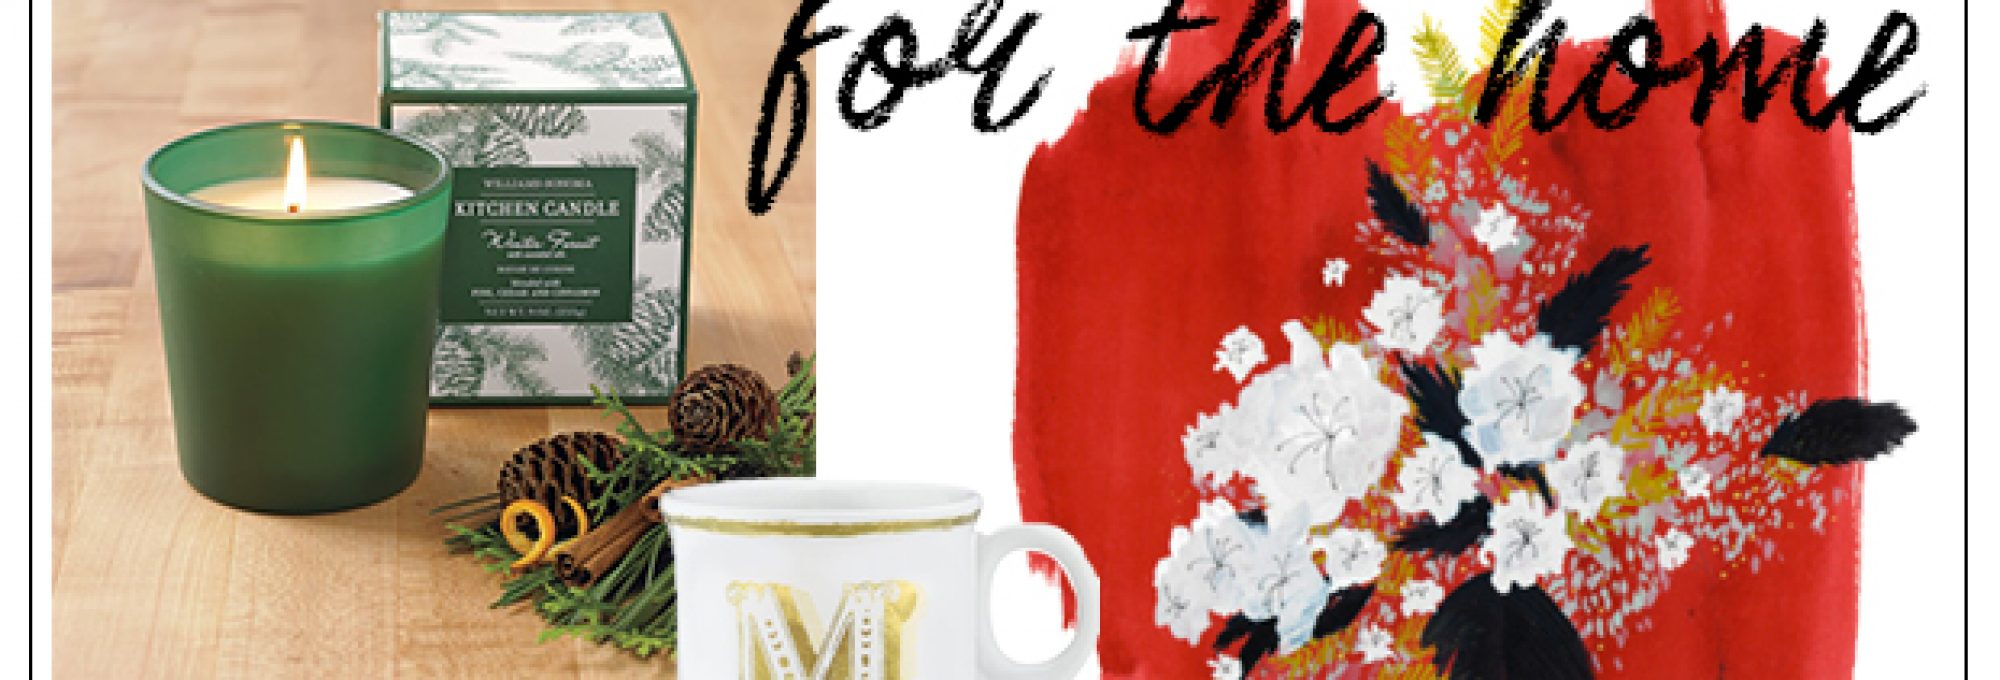 home gift guide under $25, monogram mug, tide and bloom, williams-sonoma giveaway, scented candle, for mom, for your man, for your guy, for the coworker, faux fur throw blanket, DIY lotion making kit, target, nate berkus, gold vase, peppermint platinos, art, target